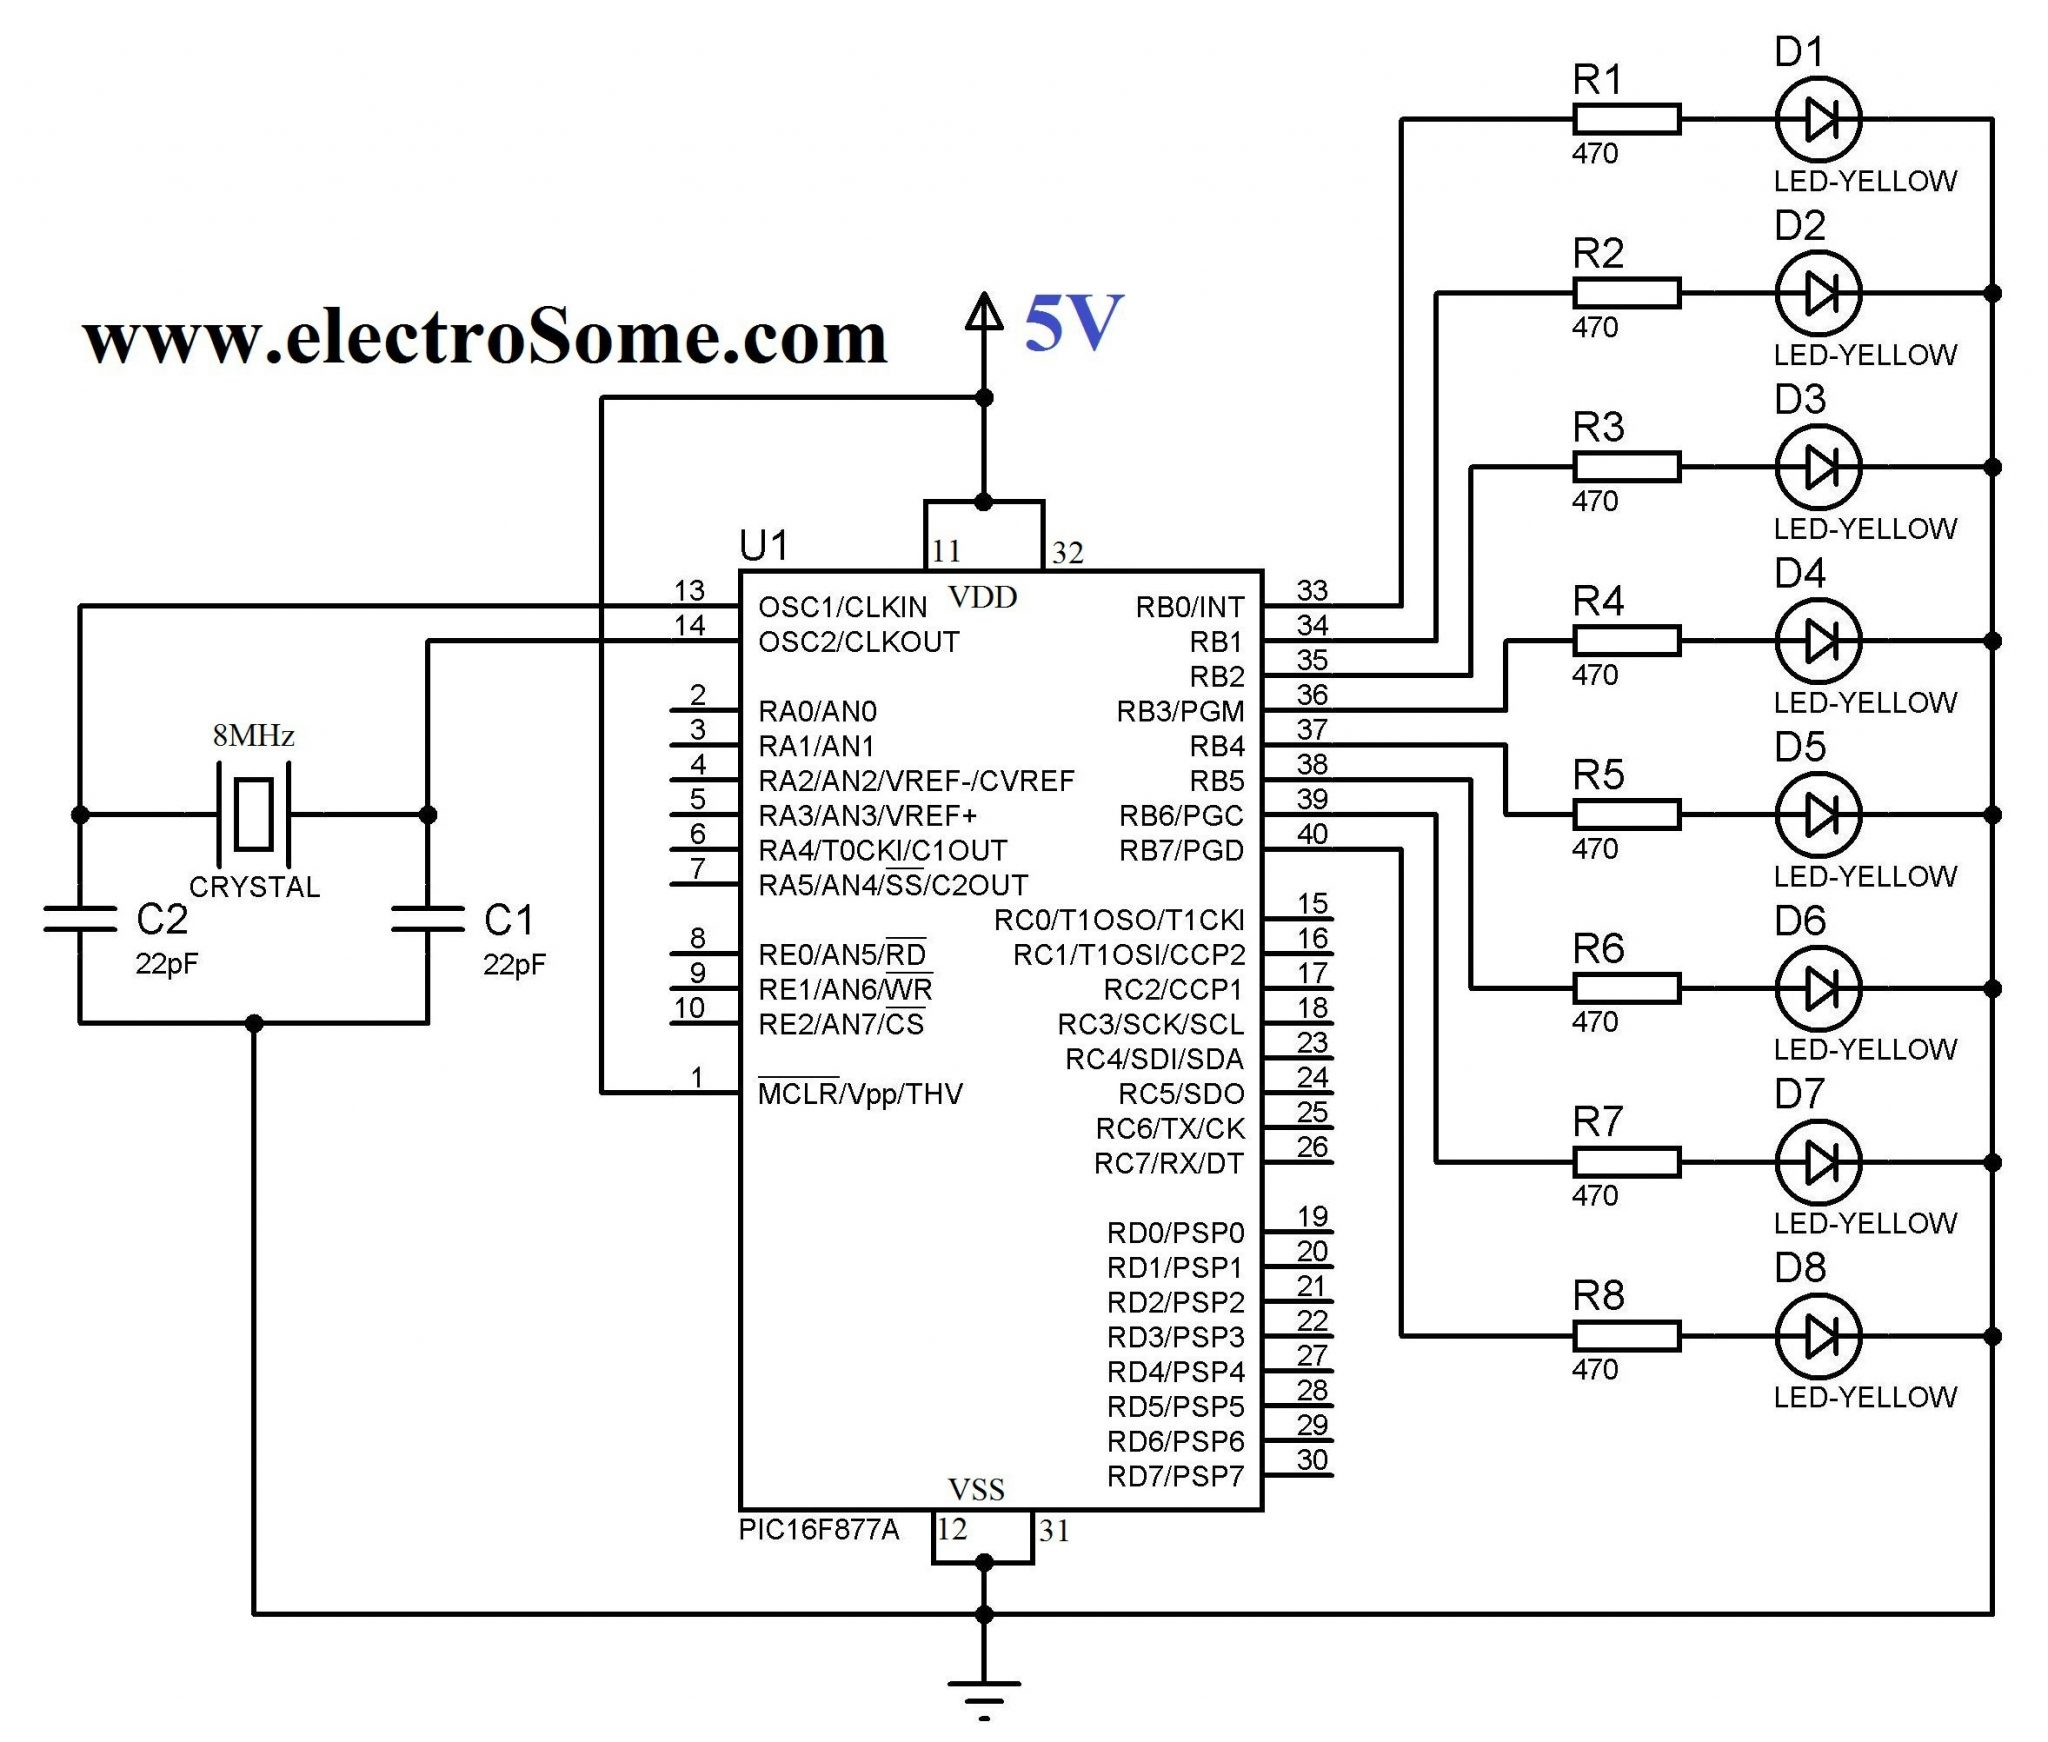 Blinking LED using PIC Microcontroller - Hi-Tech C Compiler and MPLAB